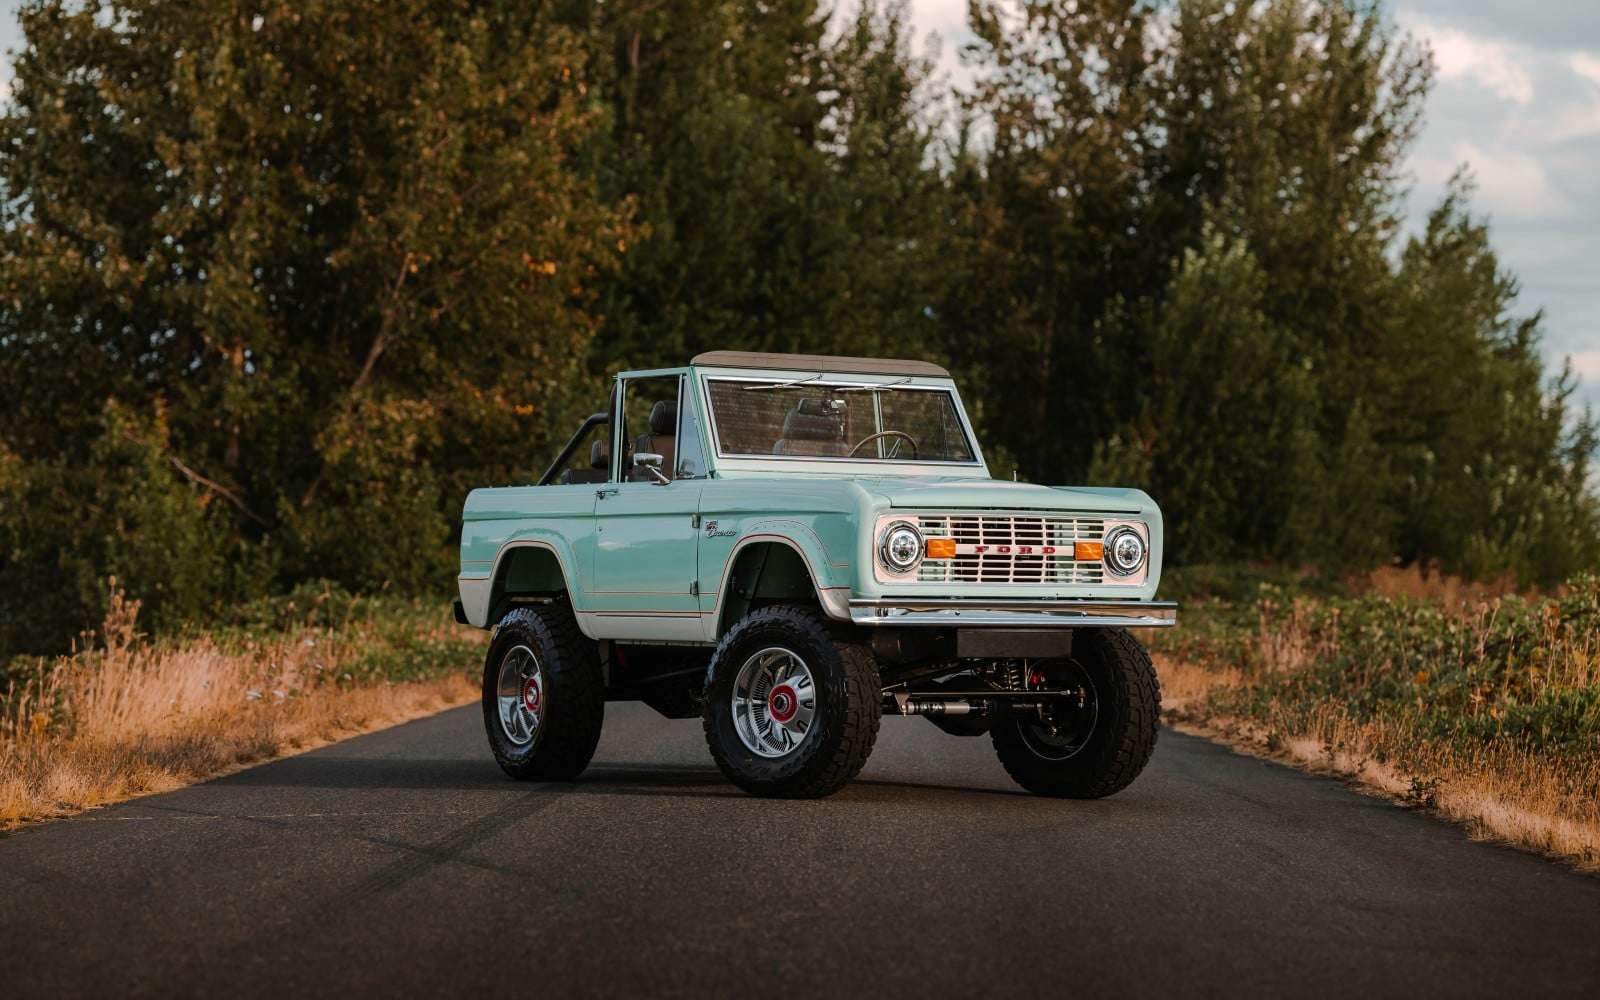 Want a 1972 Ford Bronco turned into an EV? It'll cost you $380,000